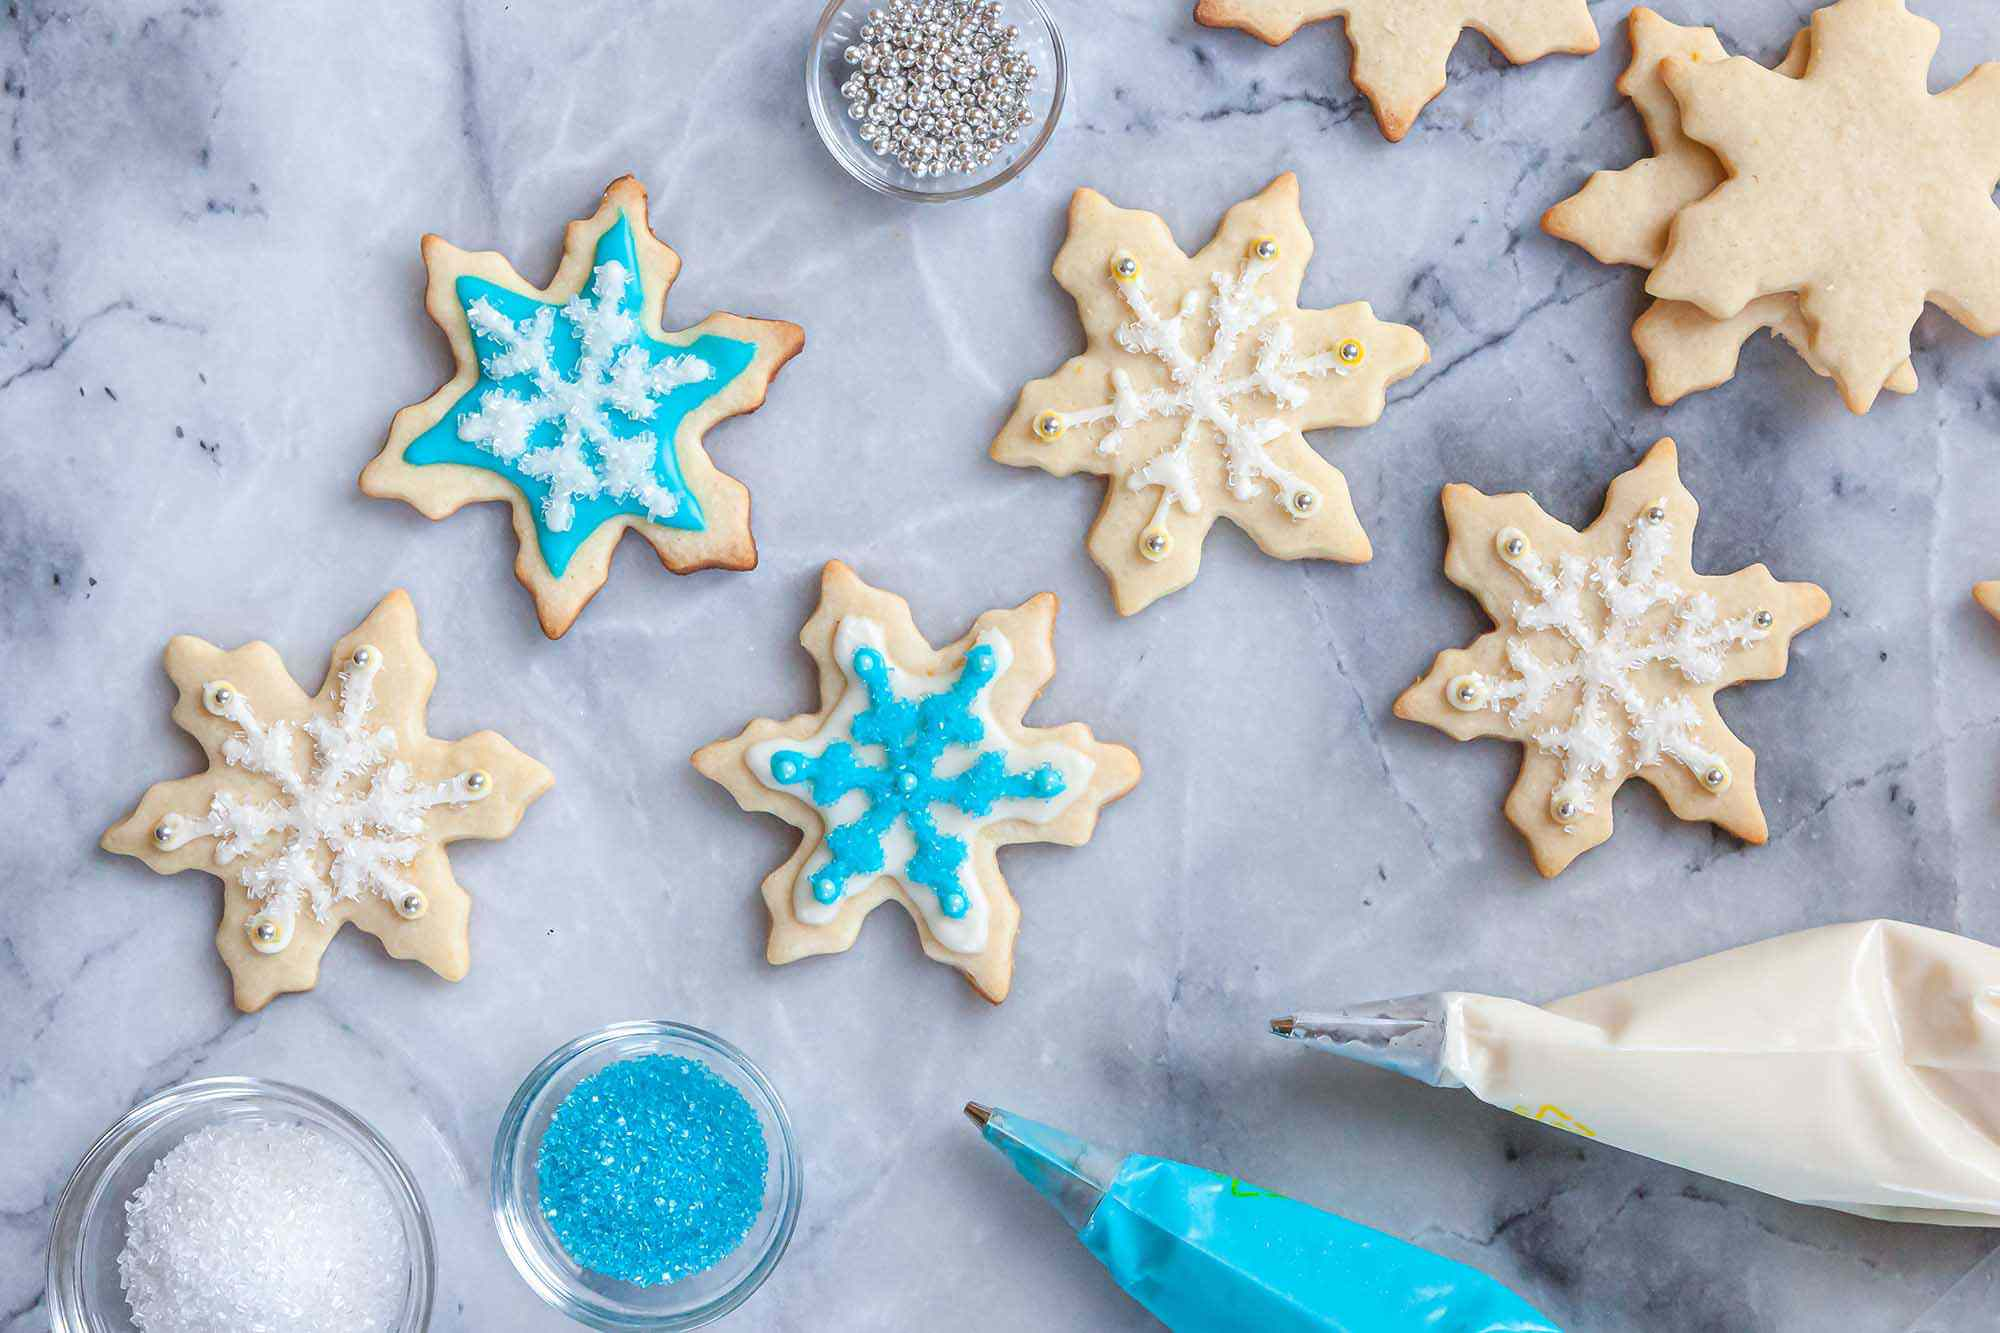 Snowflake sugar cookies decorated with Royal icing for sugar cookies.